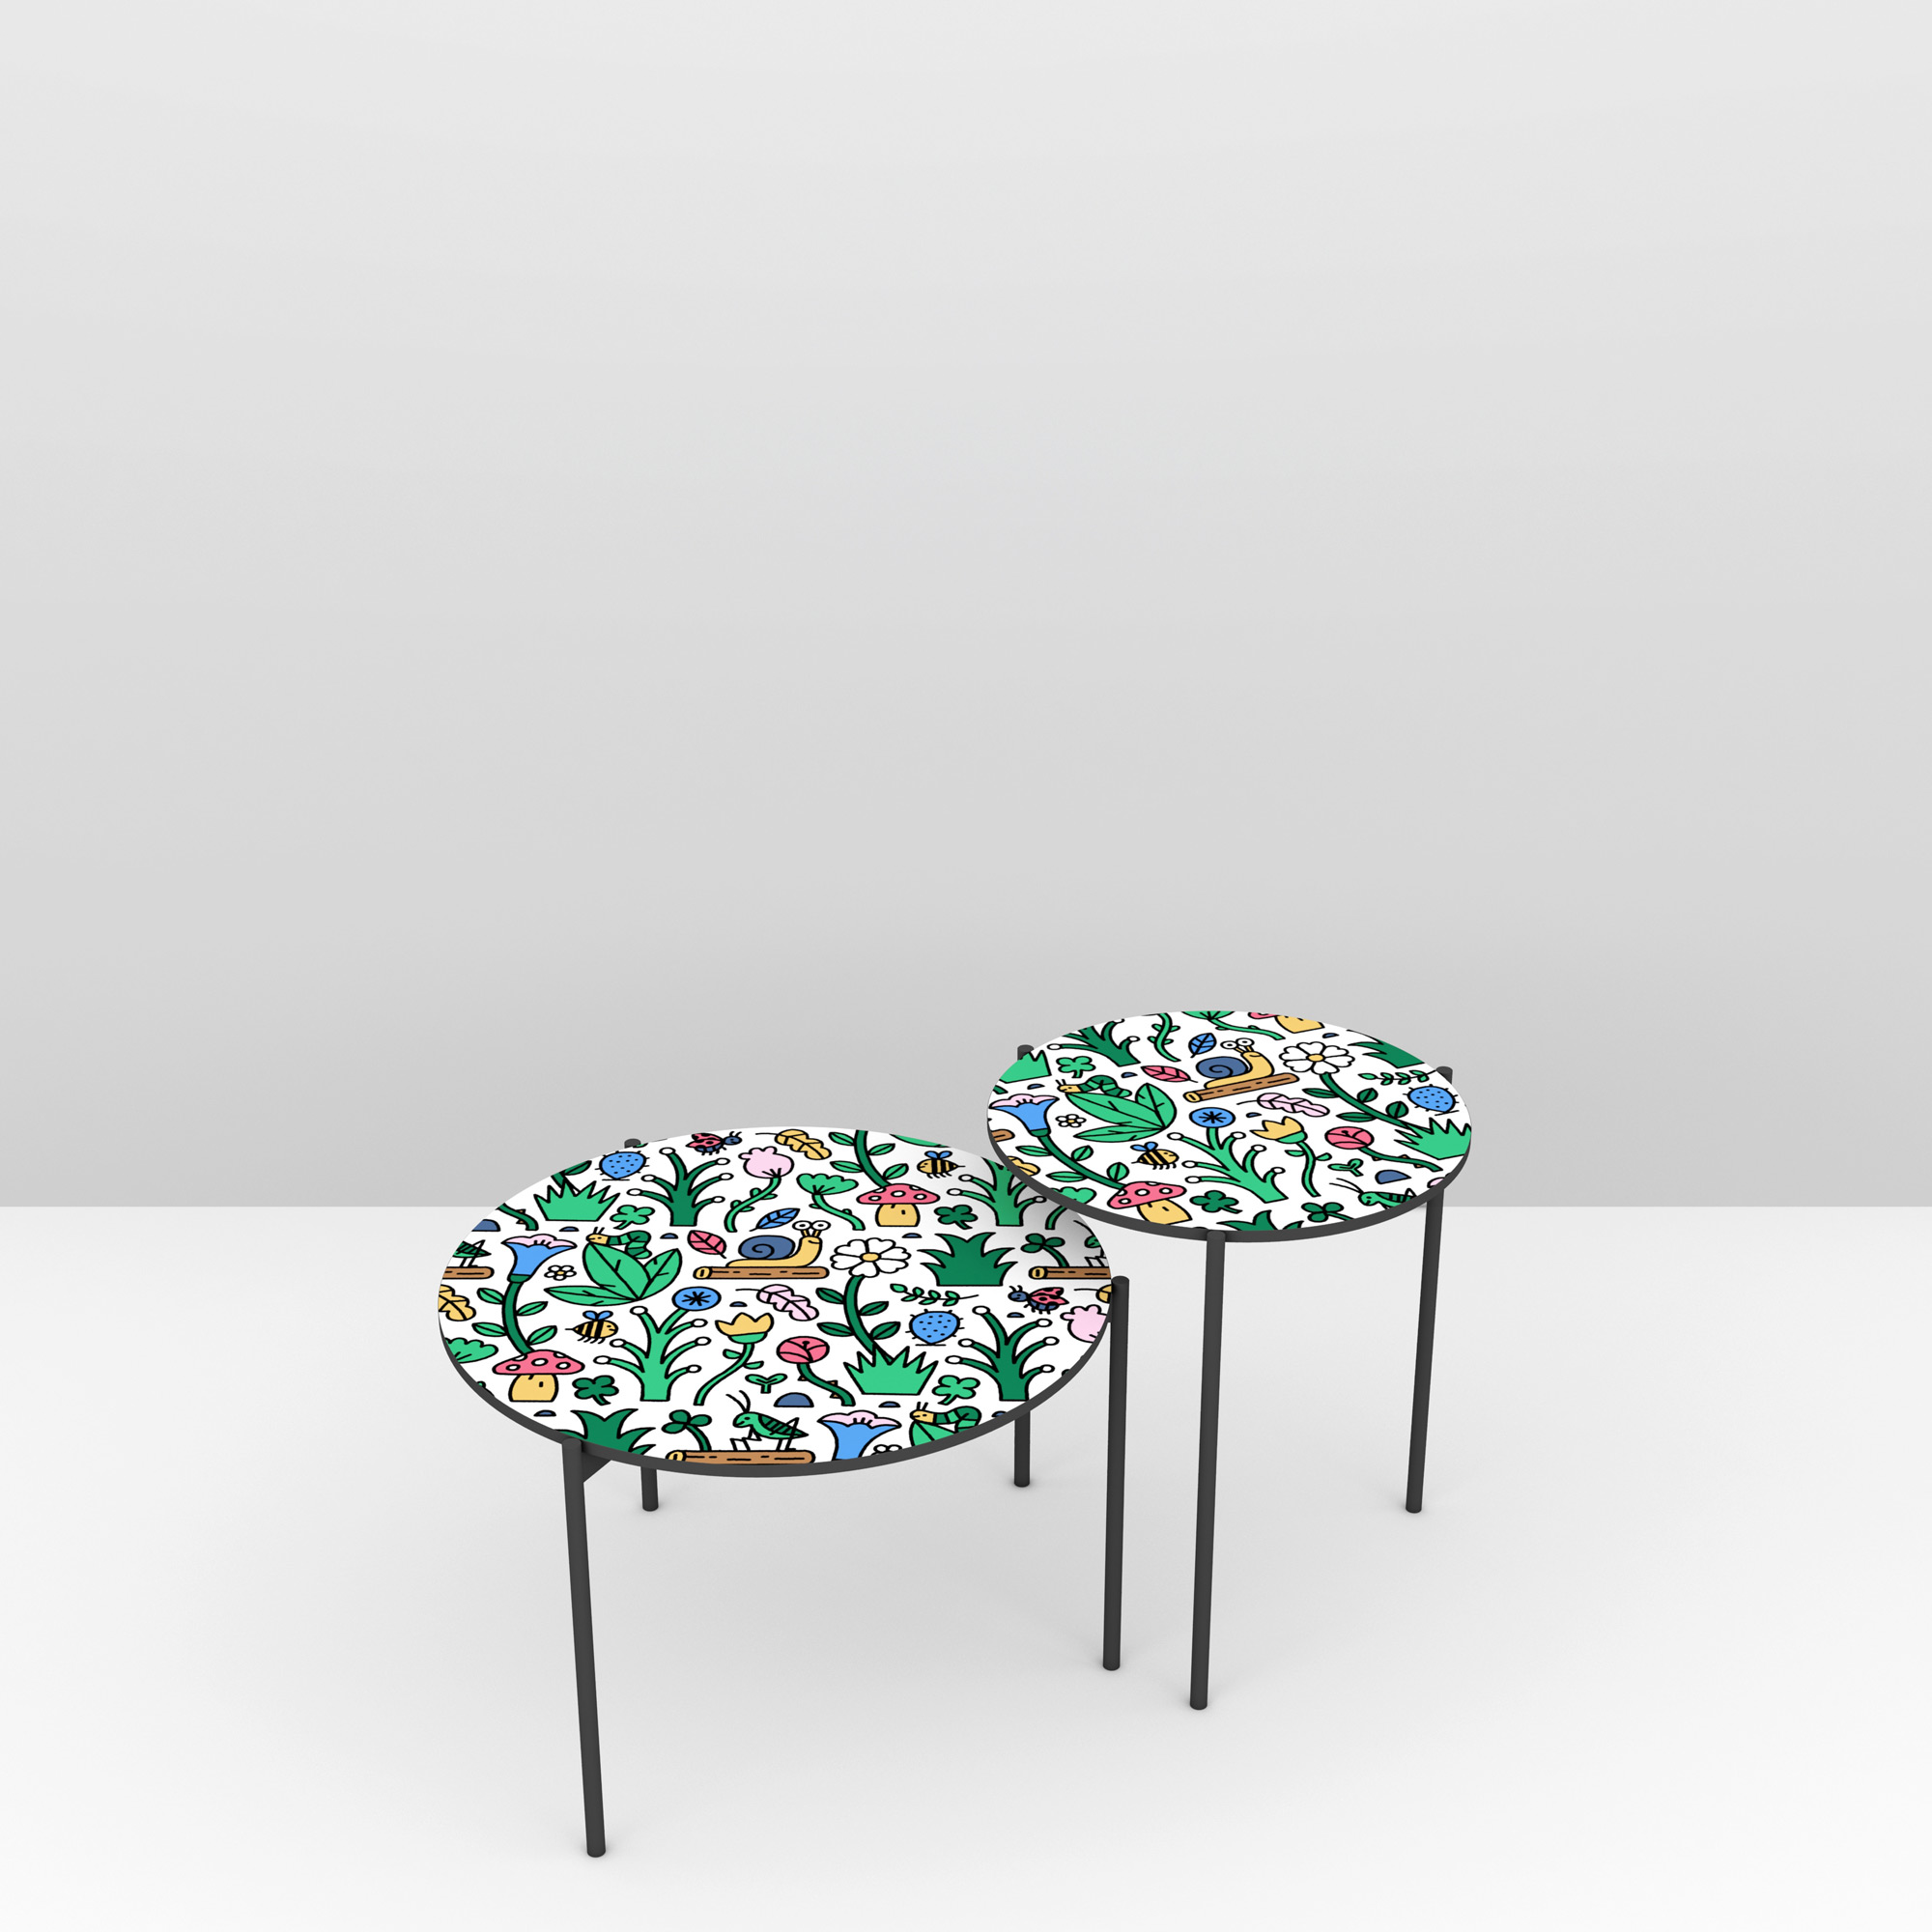 Pictoom Furniture Art Marogna Graphic Illustrator Furnishings Mauro Gatti